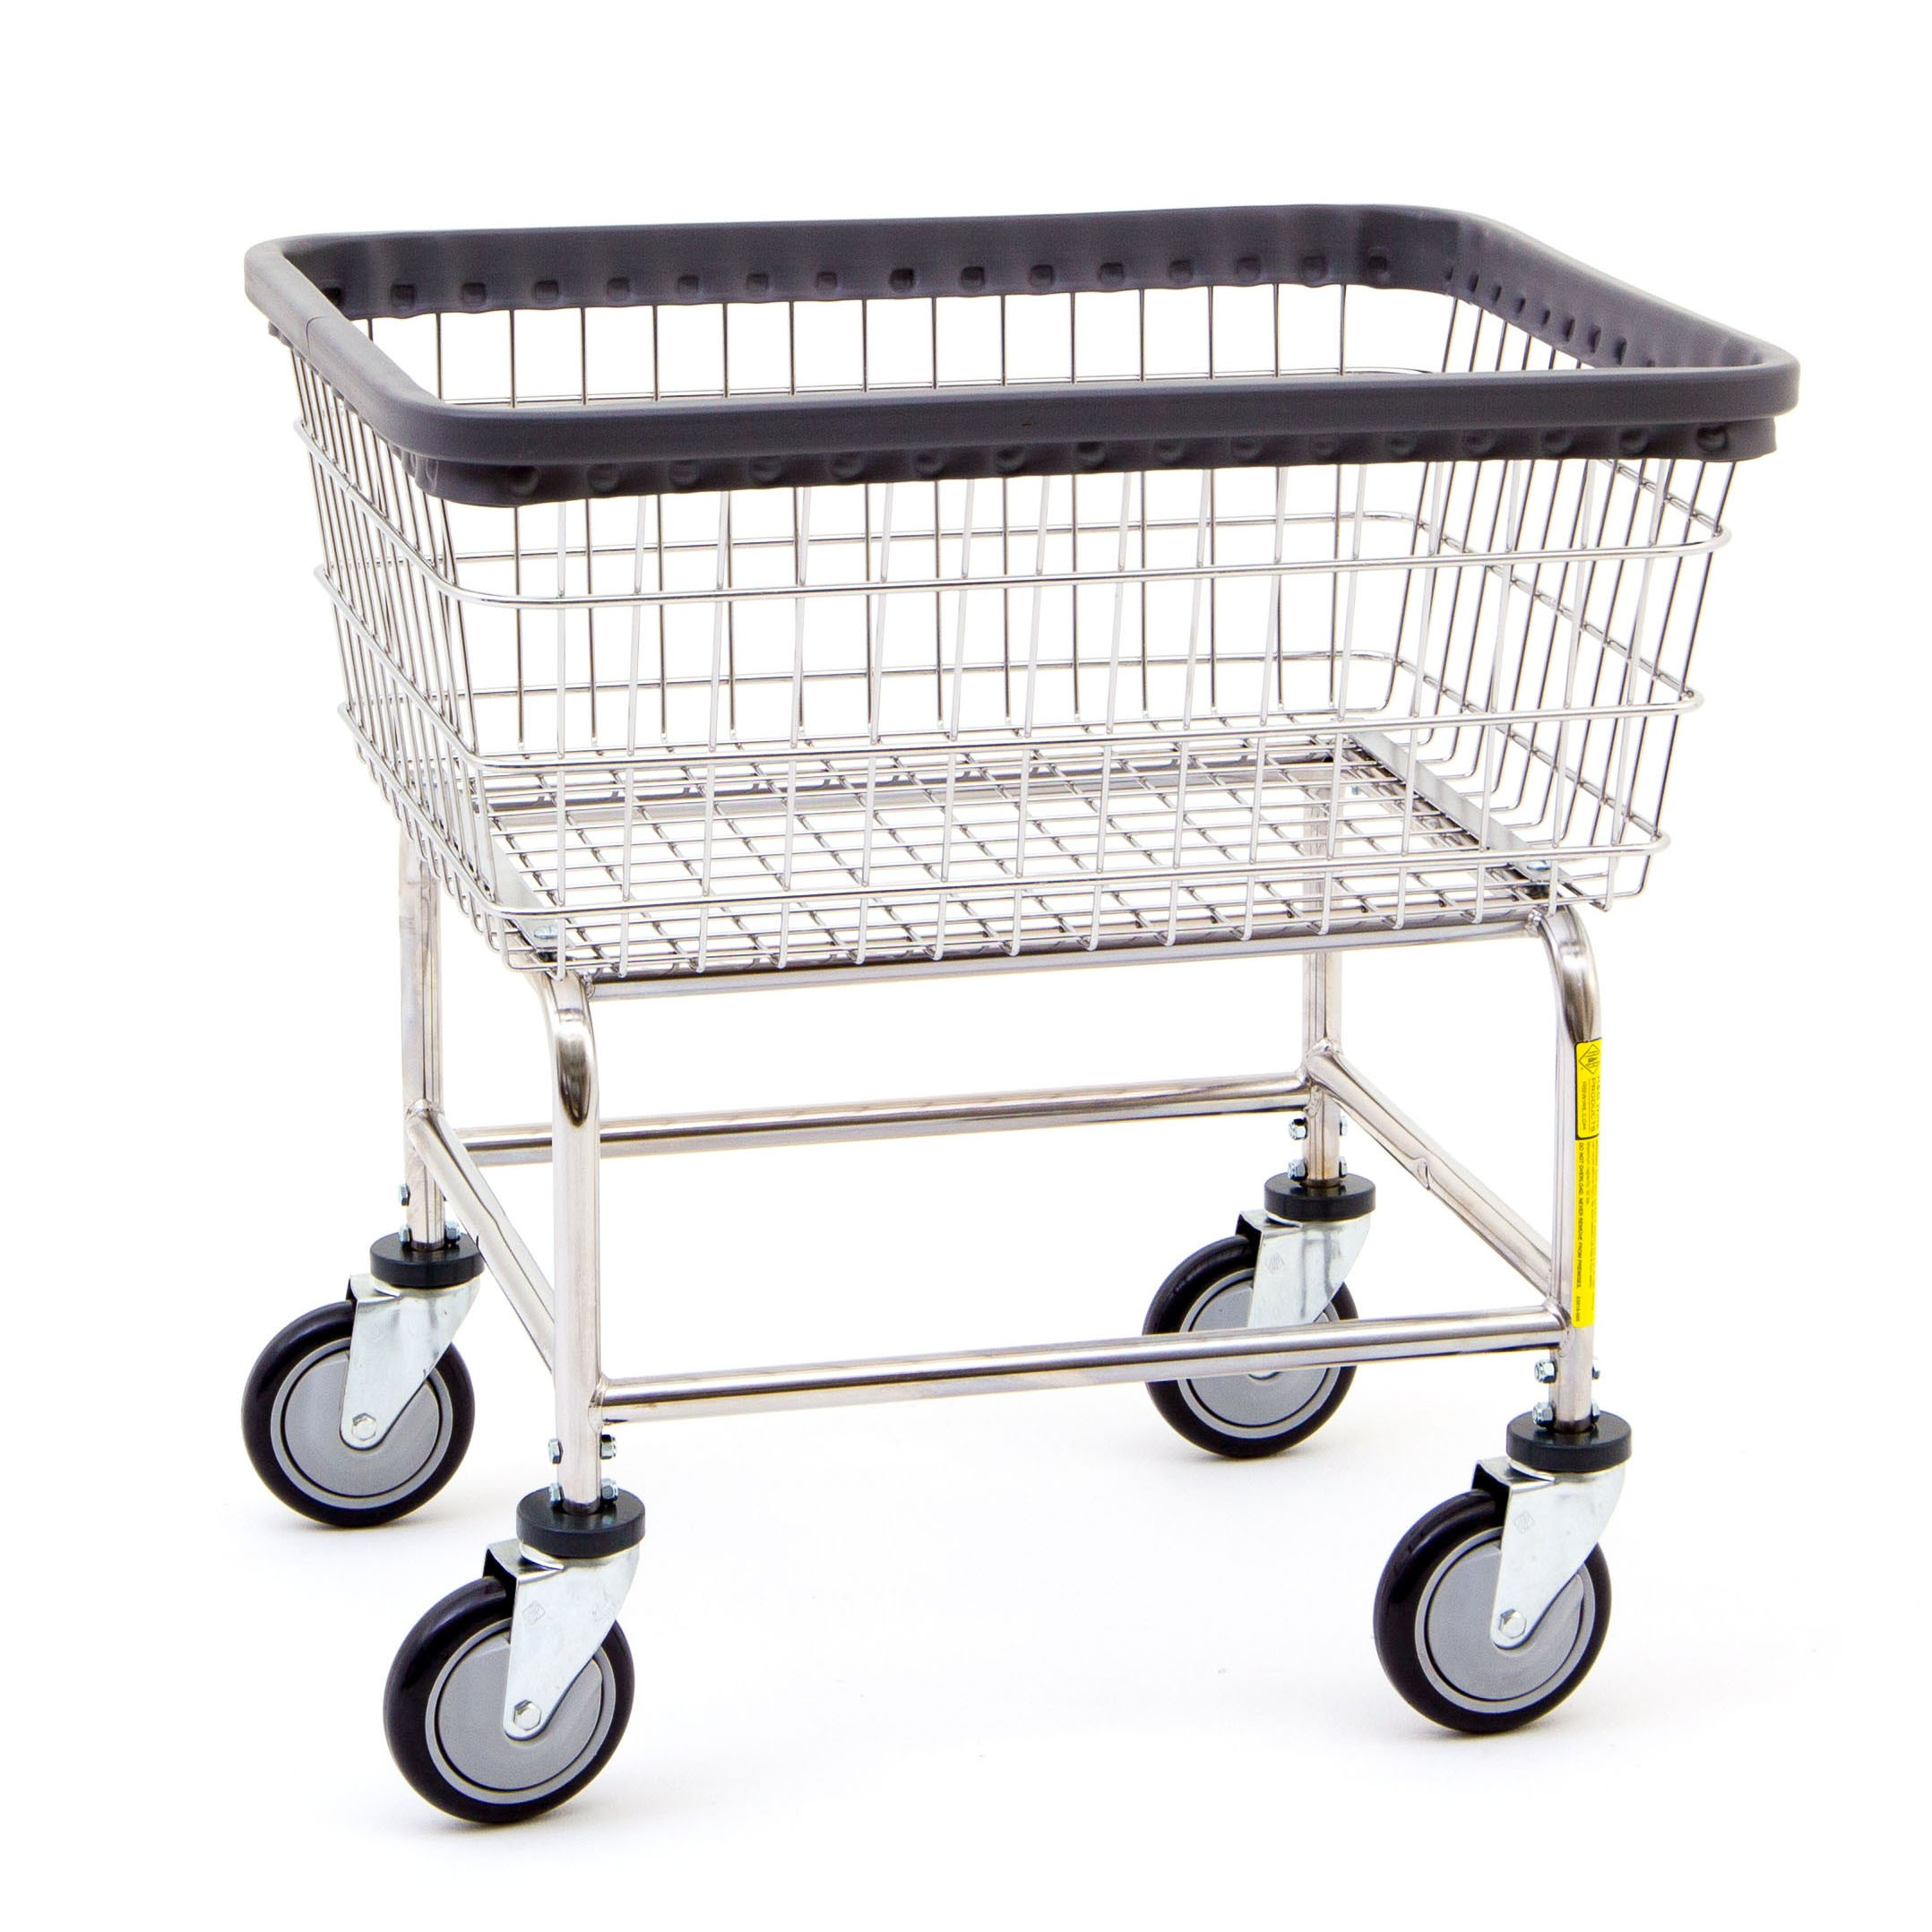 BC Textile Innovations - Basket Cart | Laundry Basket on Wheels ...